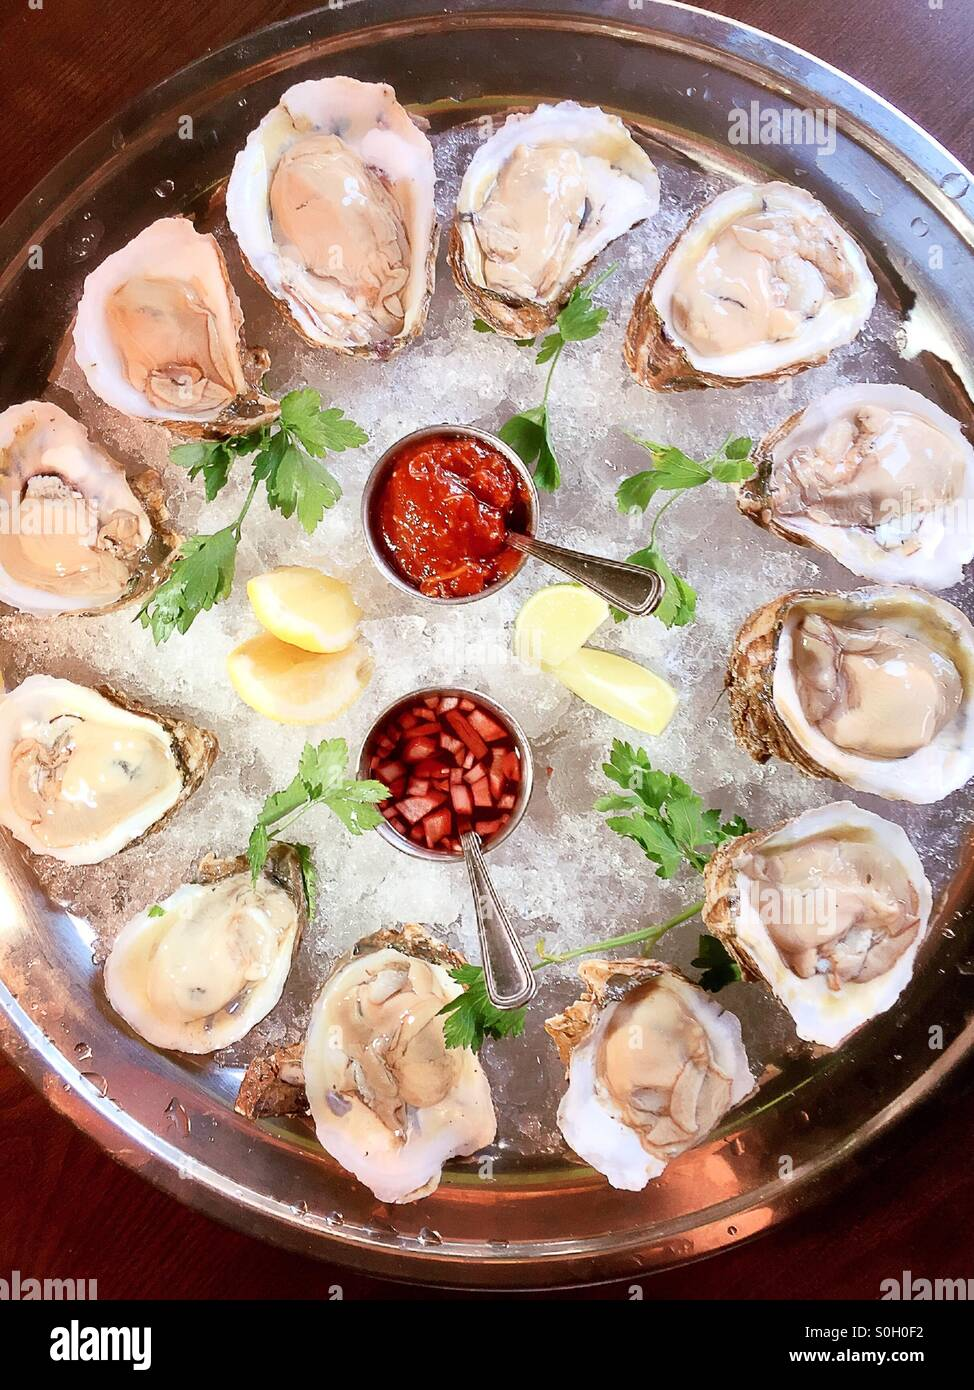 Raw oysters on the half shell platter - Stock Image